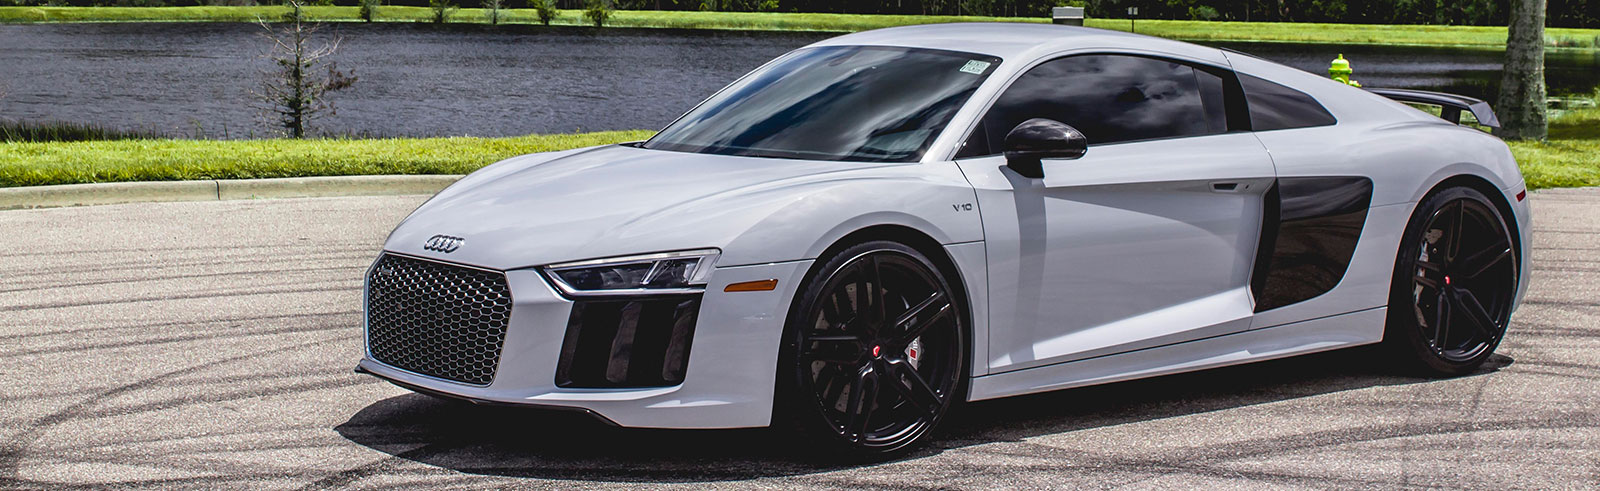 Audi R8 with Vossen Wheels